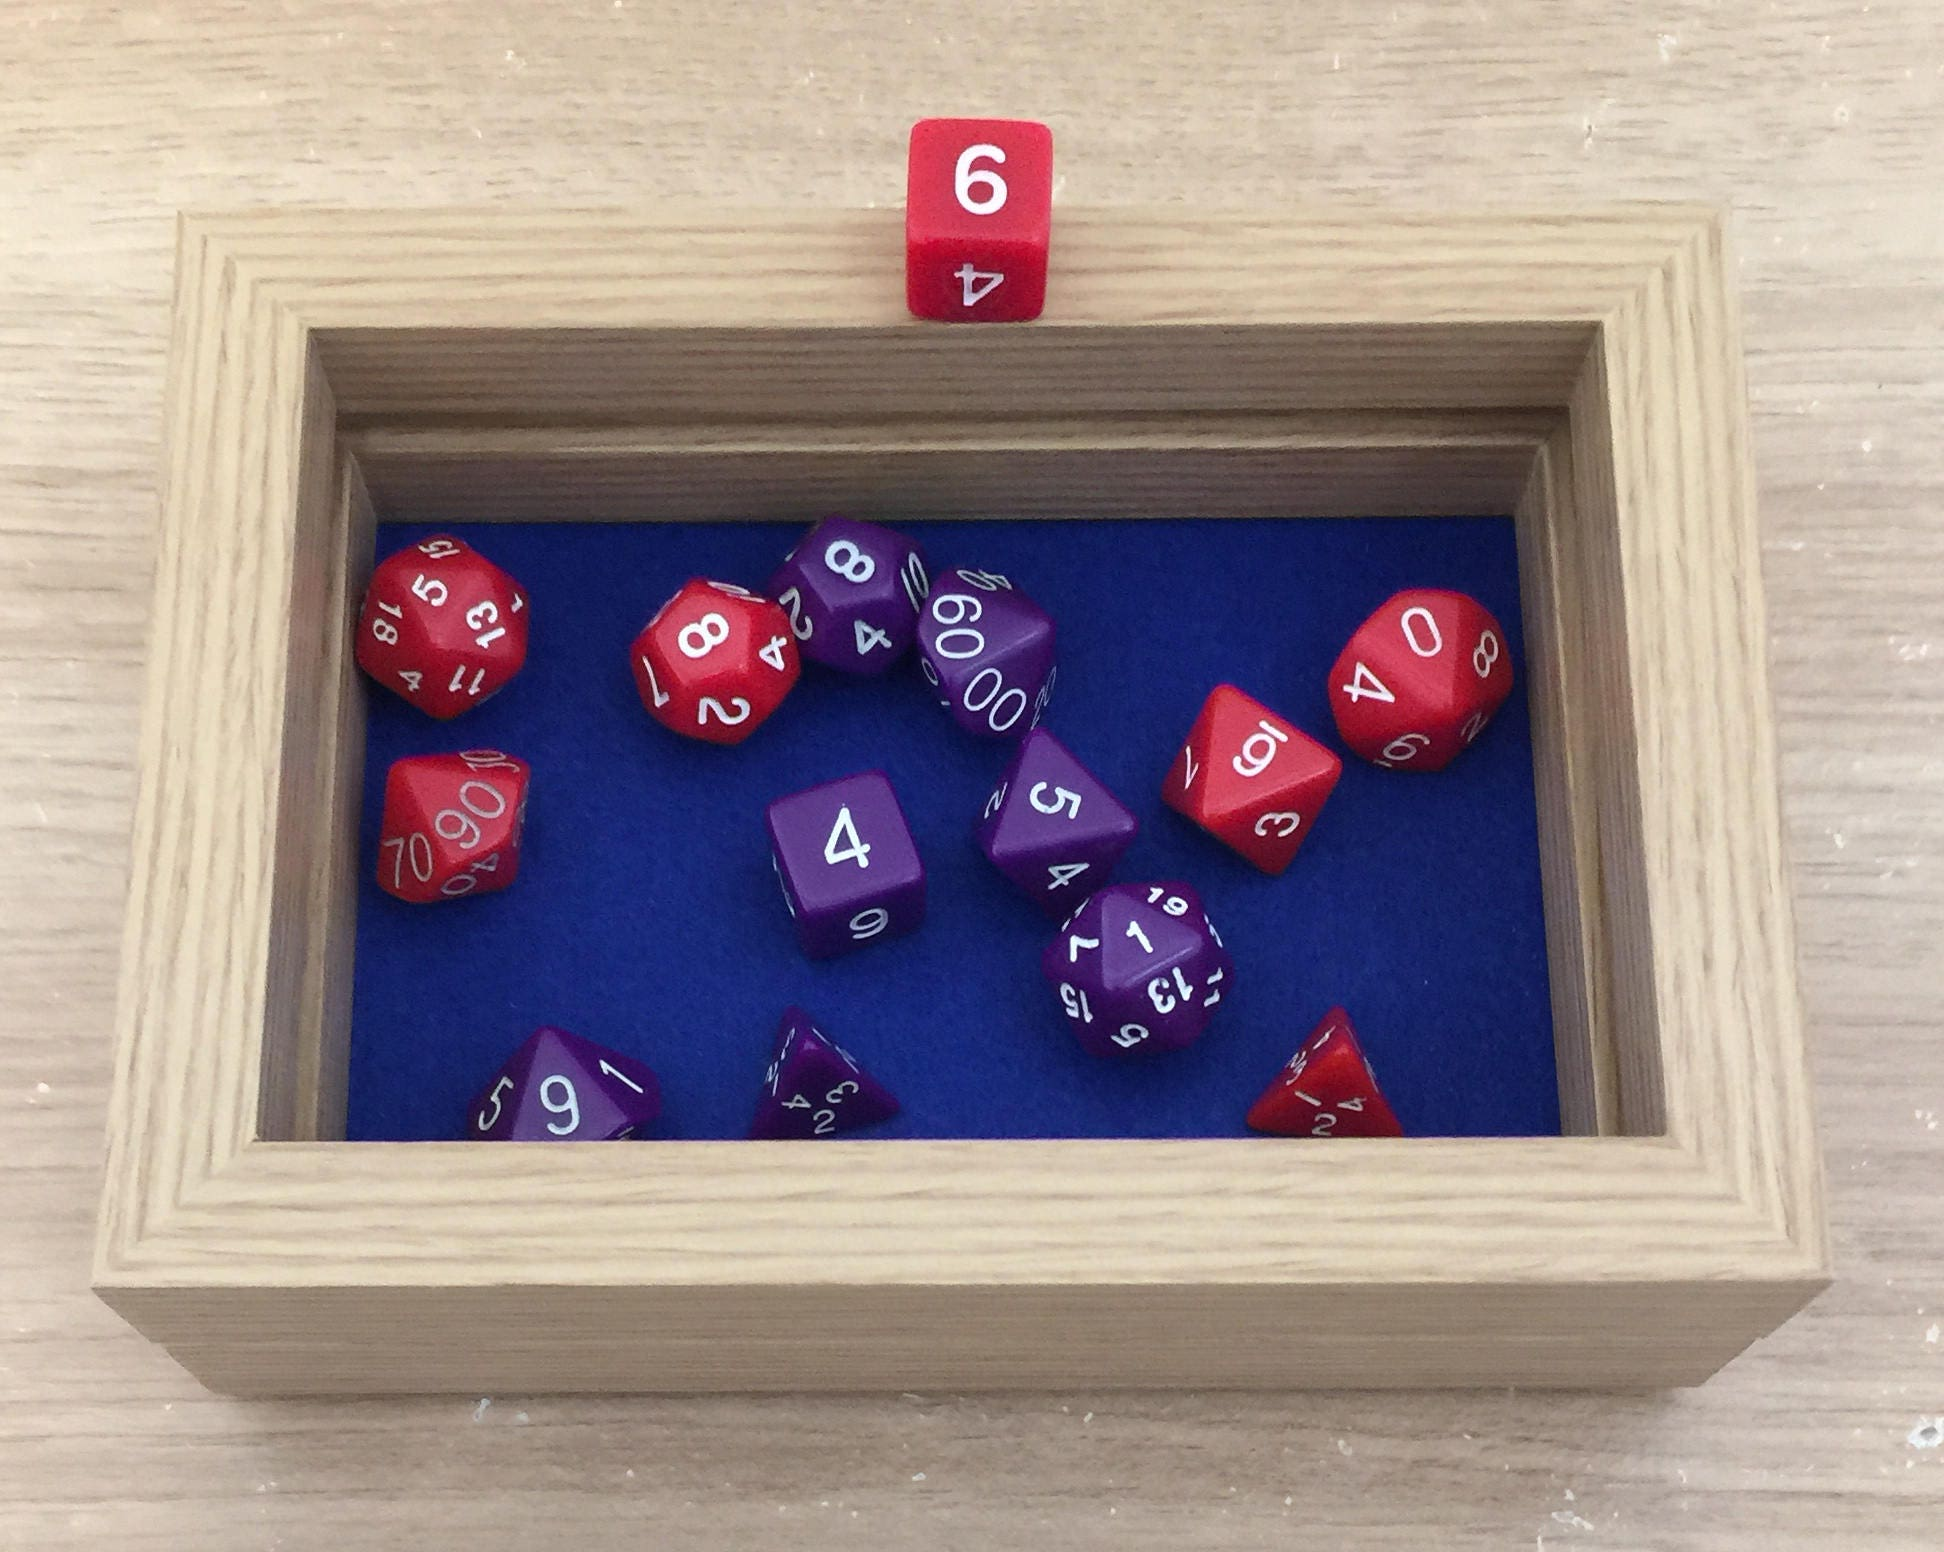 New Standard Dice Box  Tray (Double Layer) by customdicebox.com